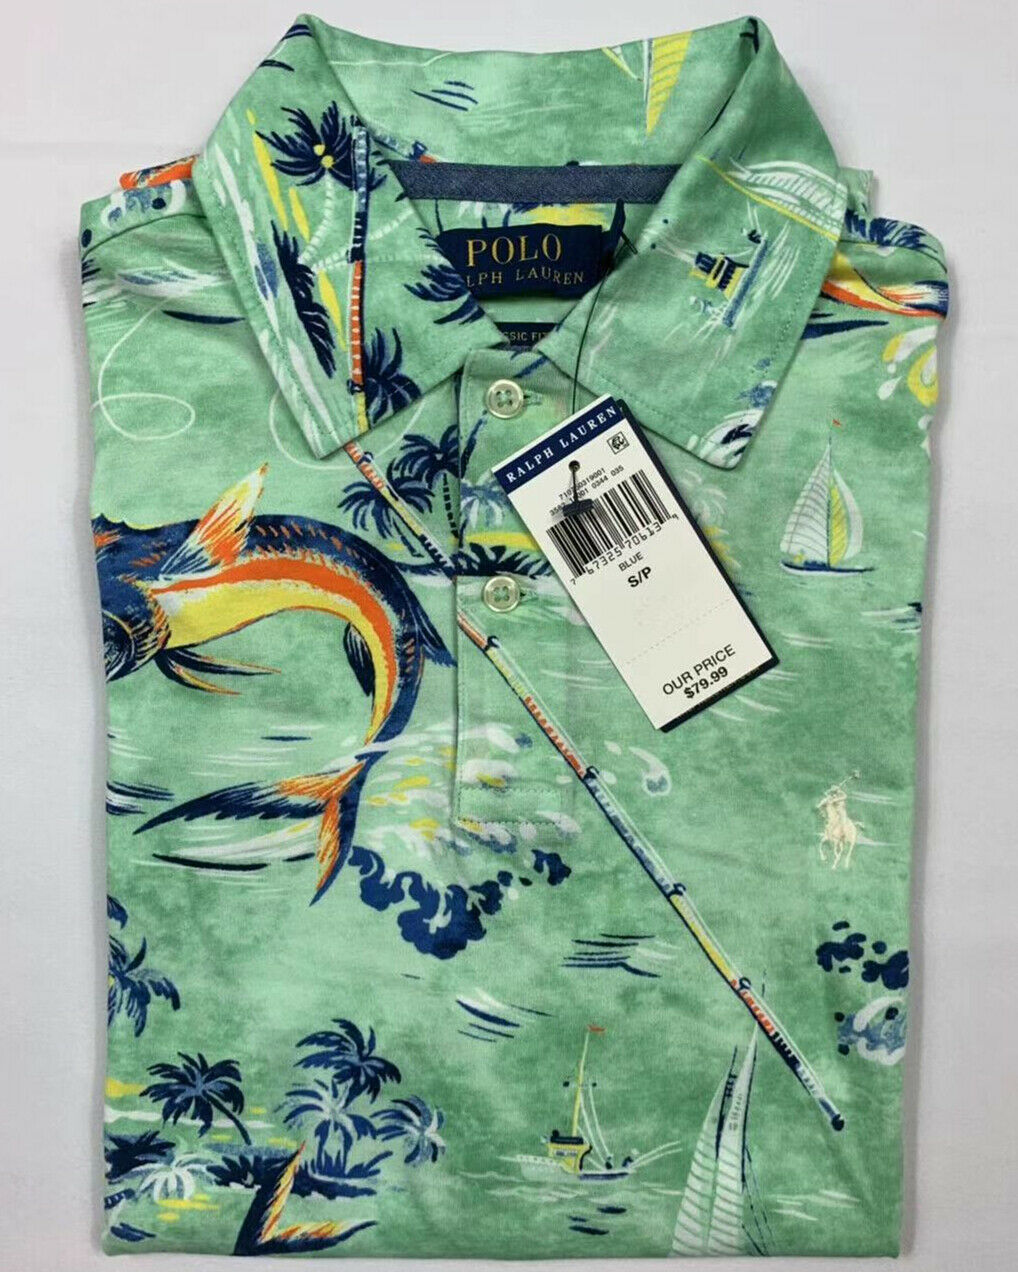 NWT-Polo-Ralph-Lauren-Men-Floral-SOFT-TOUCH-Polo-Shirt-S-M-L-XL-XXL-Big-amp-Tall miniature 5